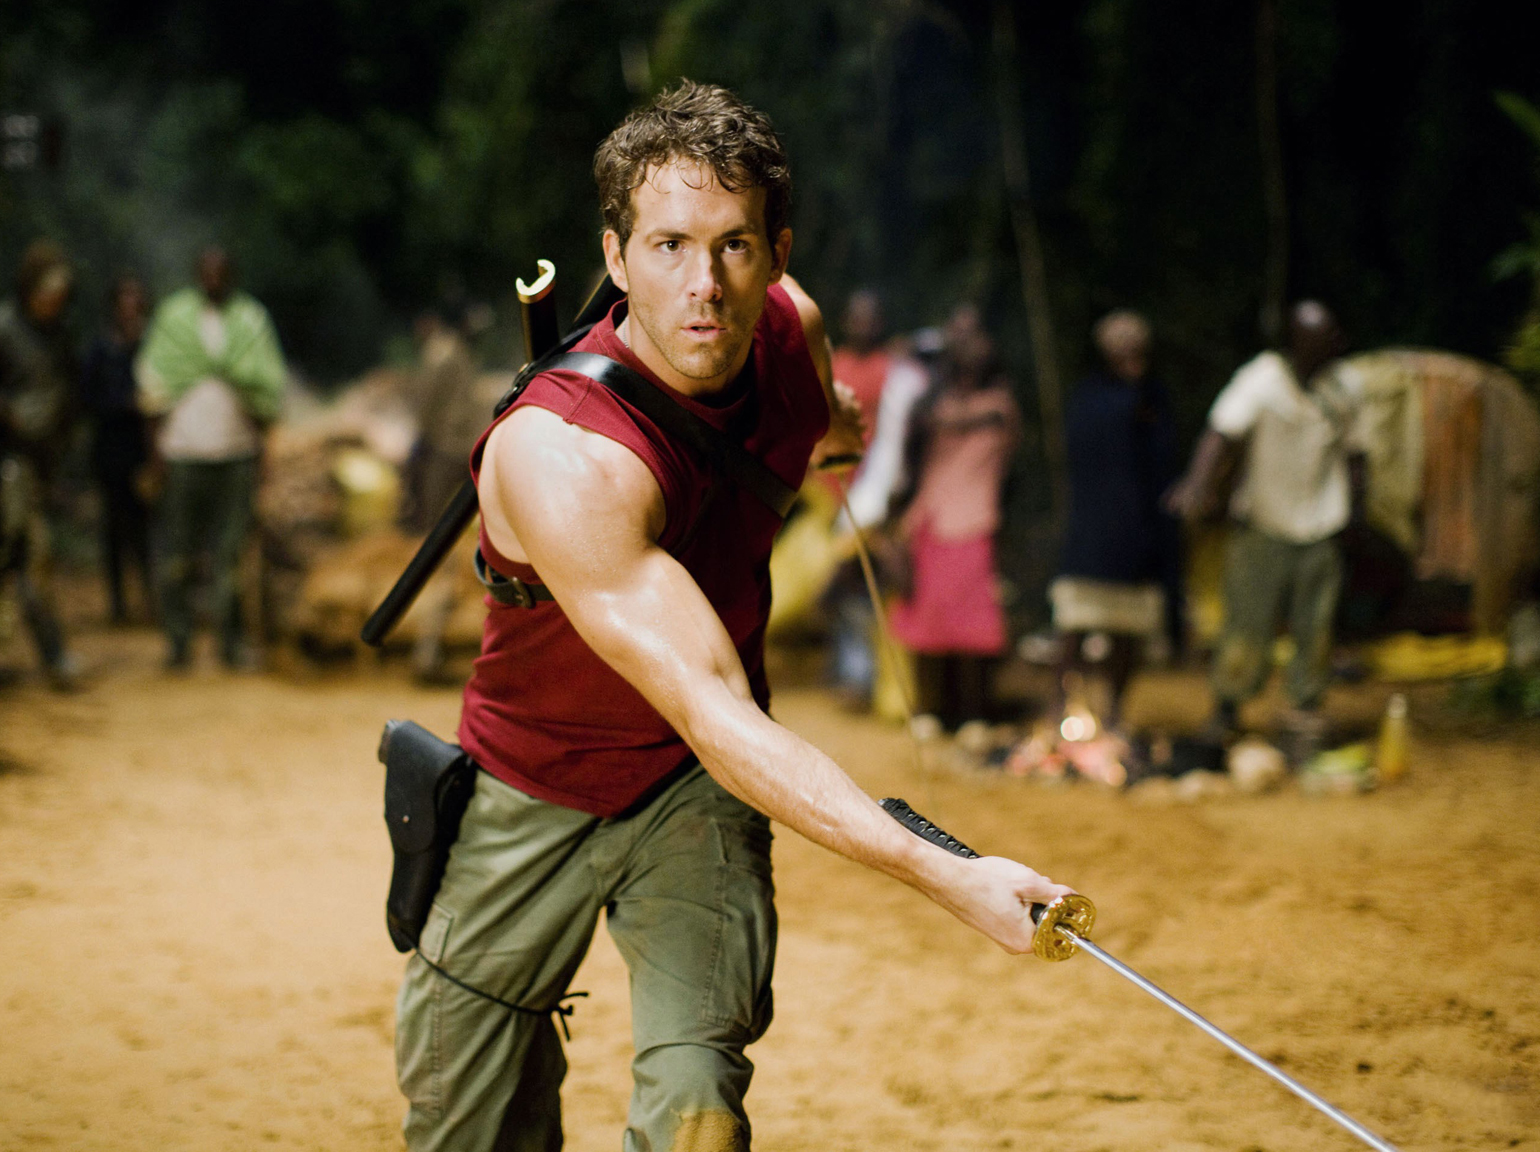 "Sebagai Wade Wilson in <em>X-Men Origins: The Wolverine</em>, 2009.<br/>""></div></div></div><div class="